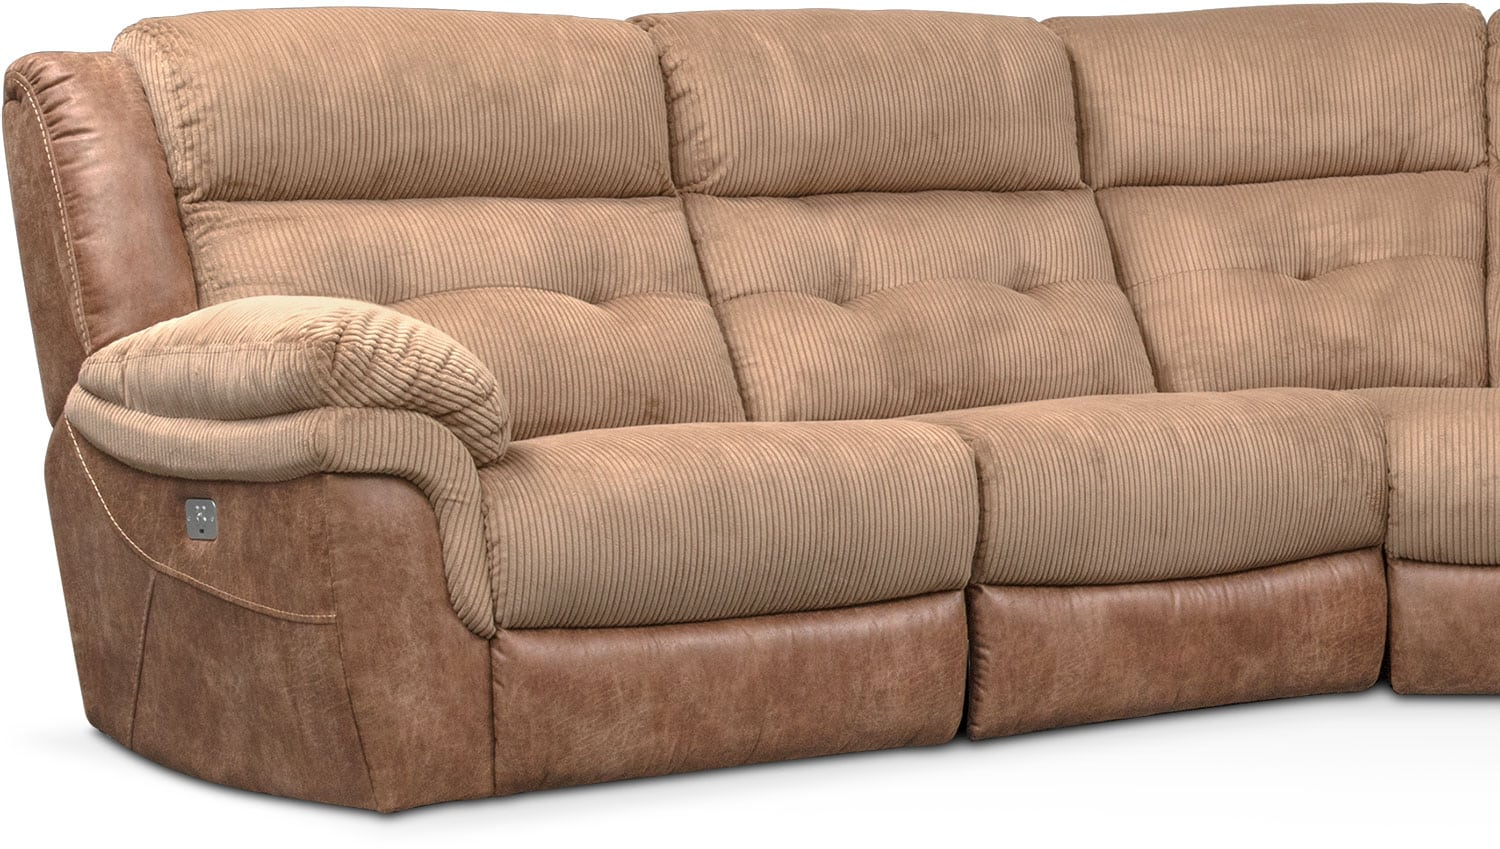 Rockridge 5 Piece Dual Power Reclining Sectional With 2